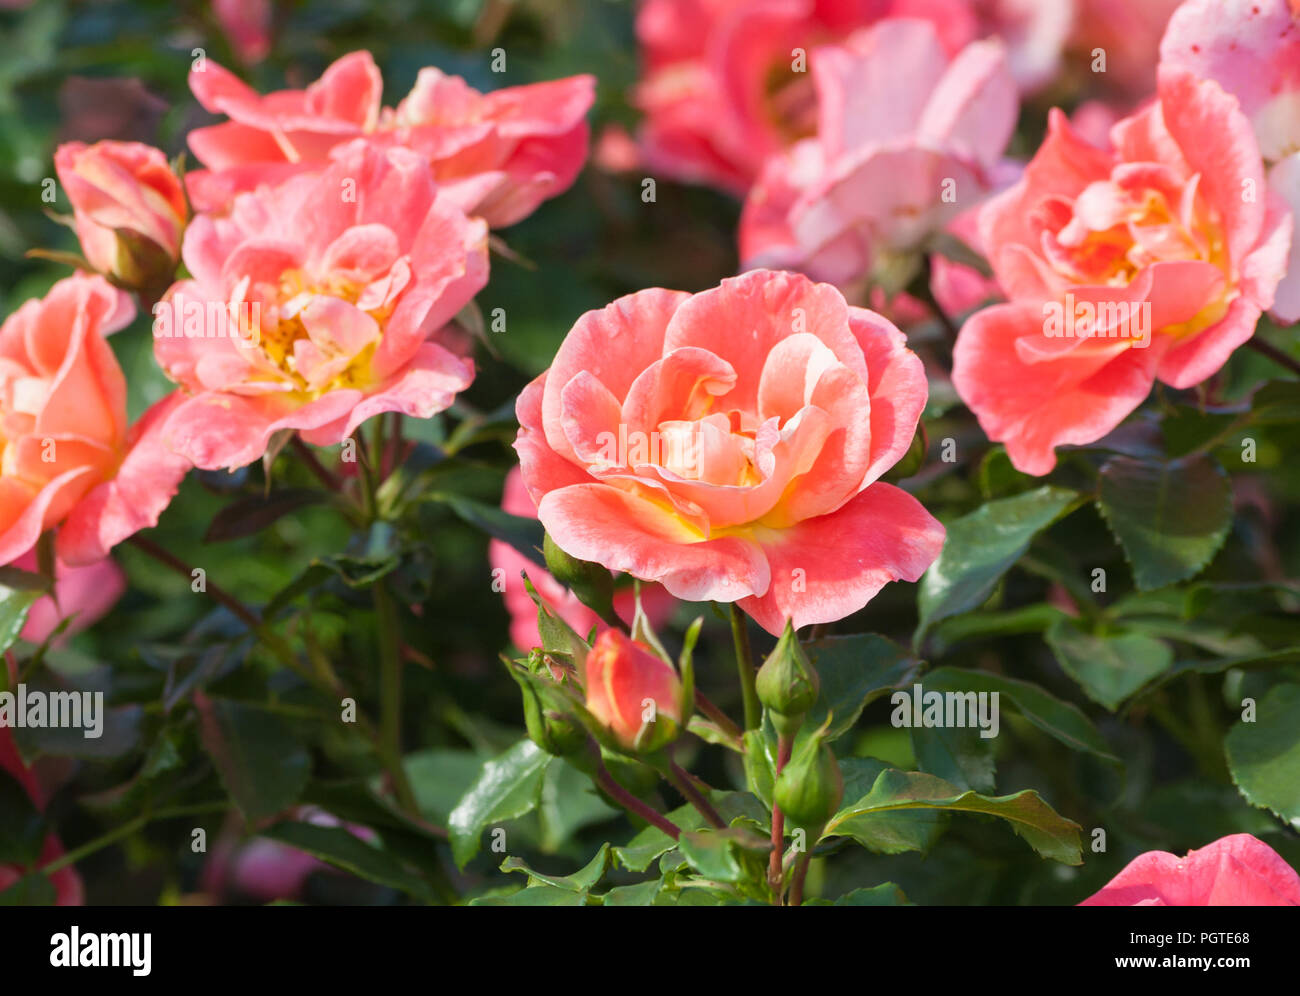 Rose flower grade airbrush a beautiful orange pink rose of medium rose flower grade airbrush a beautiful orange pink rose of medium sized flower in the color of the petals yellow orange and pink tones the plant izmirmasajfo